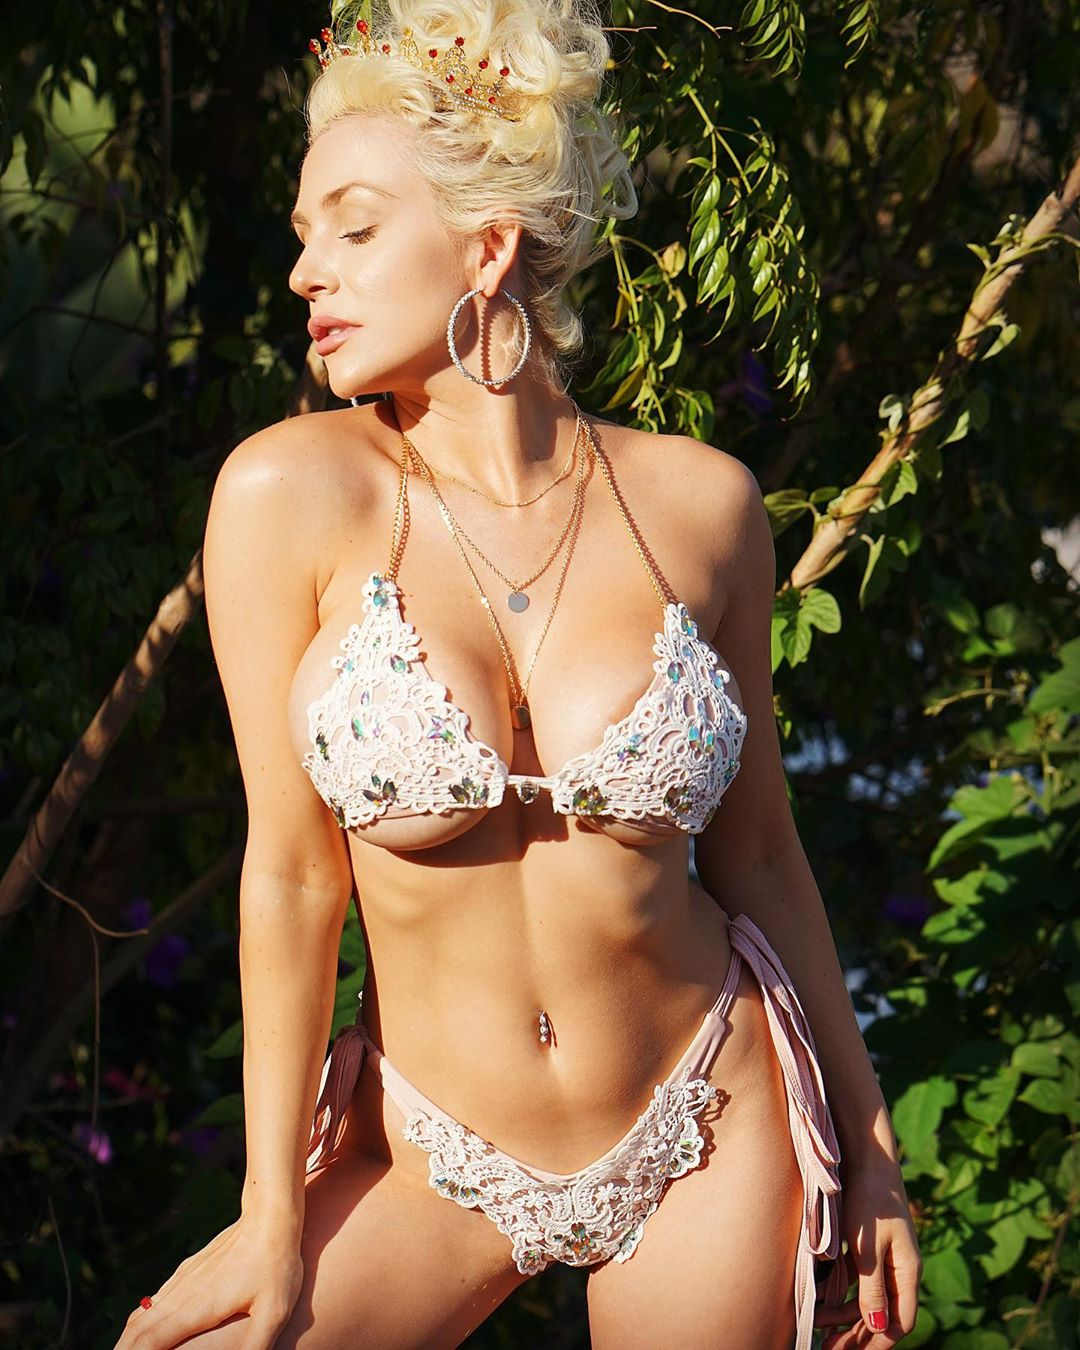 Courtney Stodden, a modelo que é a nova conquista do ex de Megan Fox